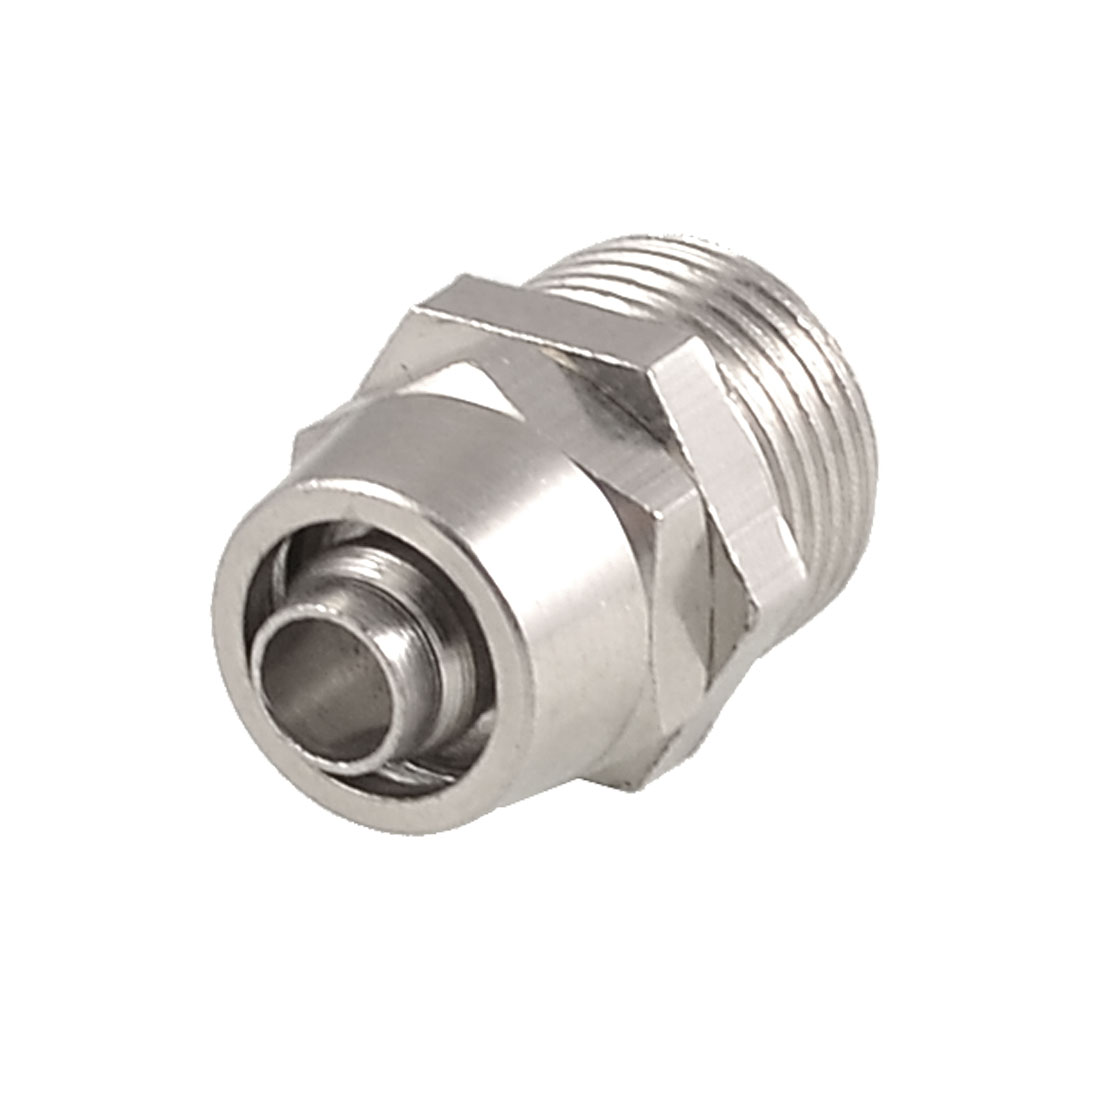 "0.51"" x 0.28"" Pneumatic Air Hose Quick Coupler Connector Fittings Silver Tone"